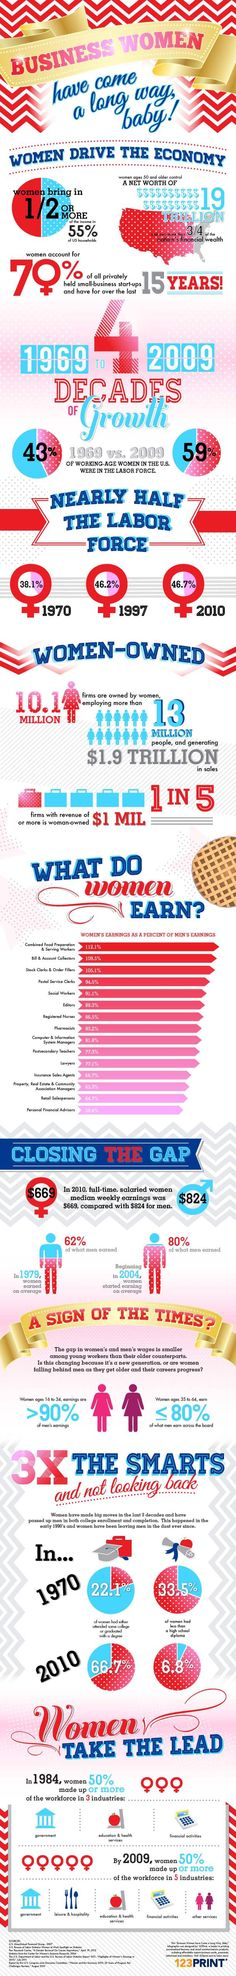 Business Women Have Come A Long Way Baby! #INFOGRAPHIC